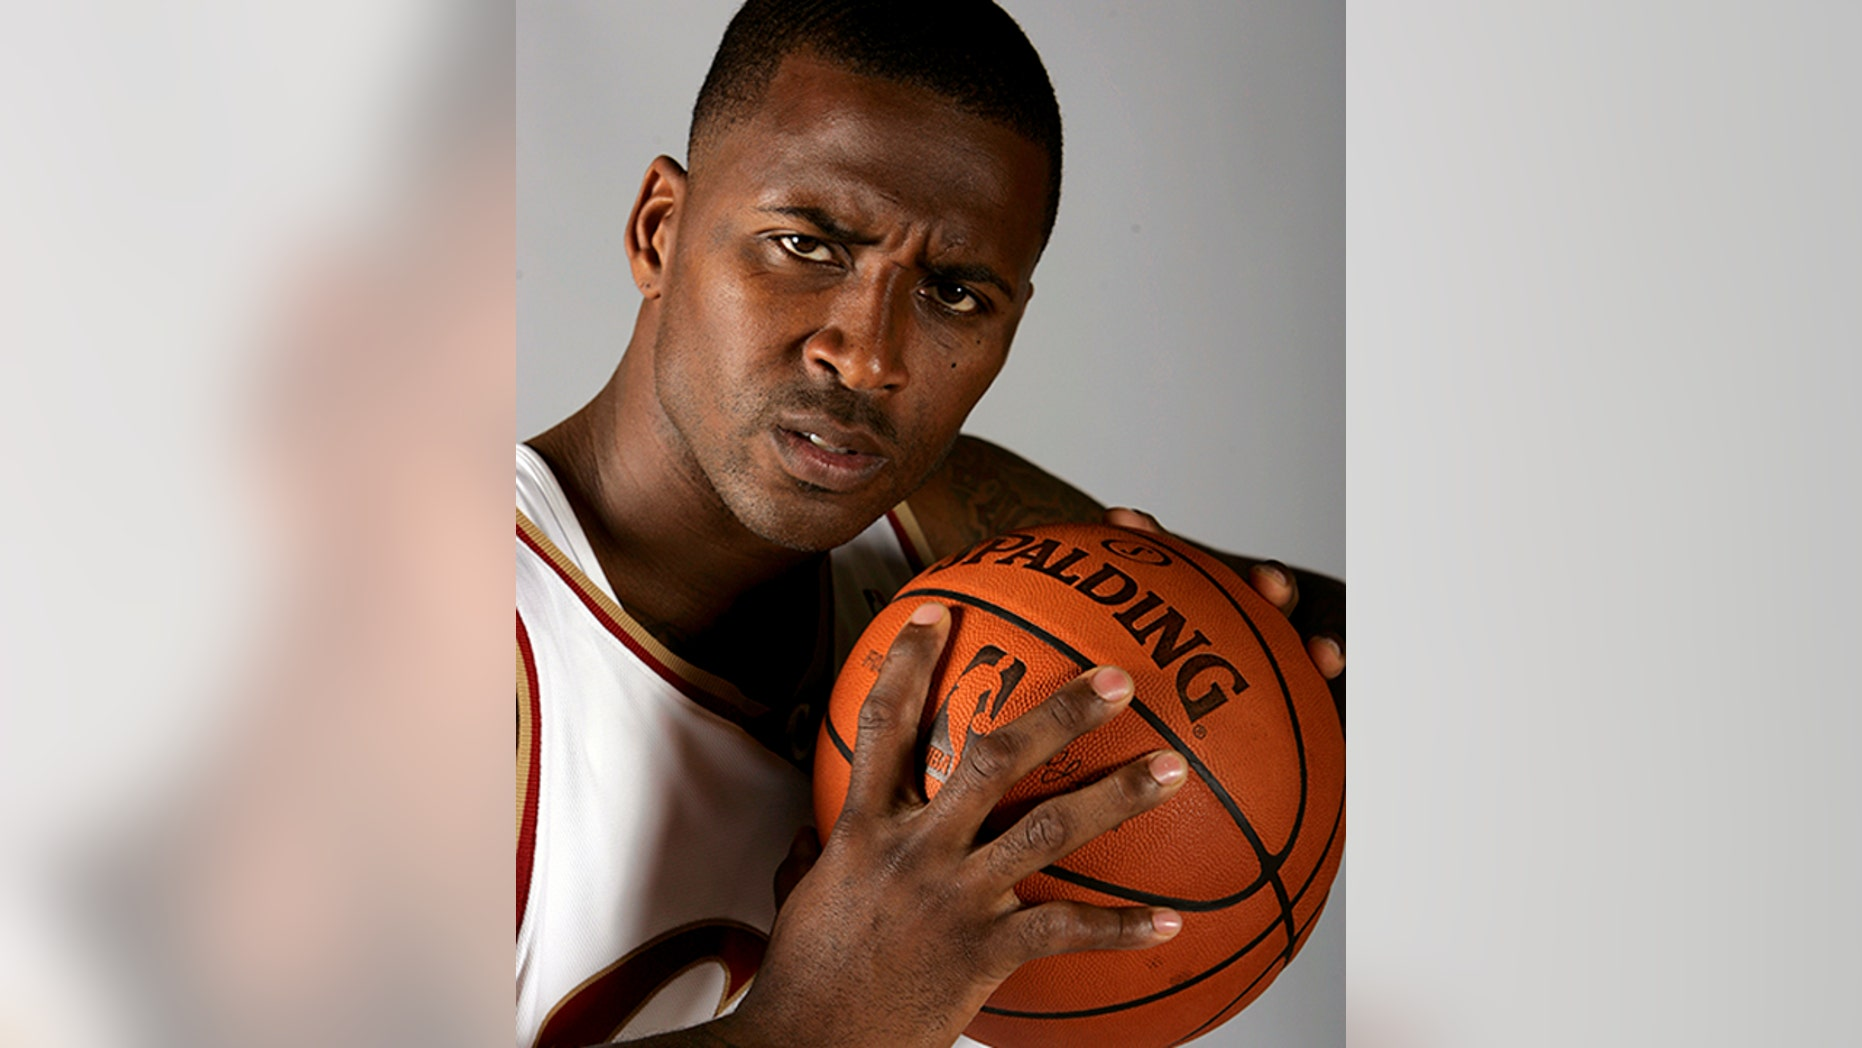 Lorenzen Wright poses at the Cleveland Cavaliers' Media Day in the fall of 2008.